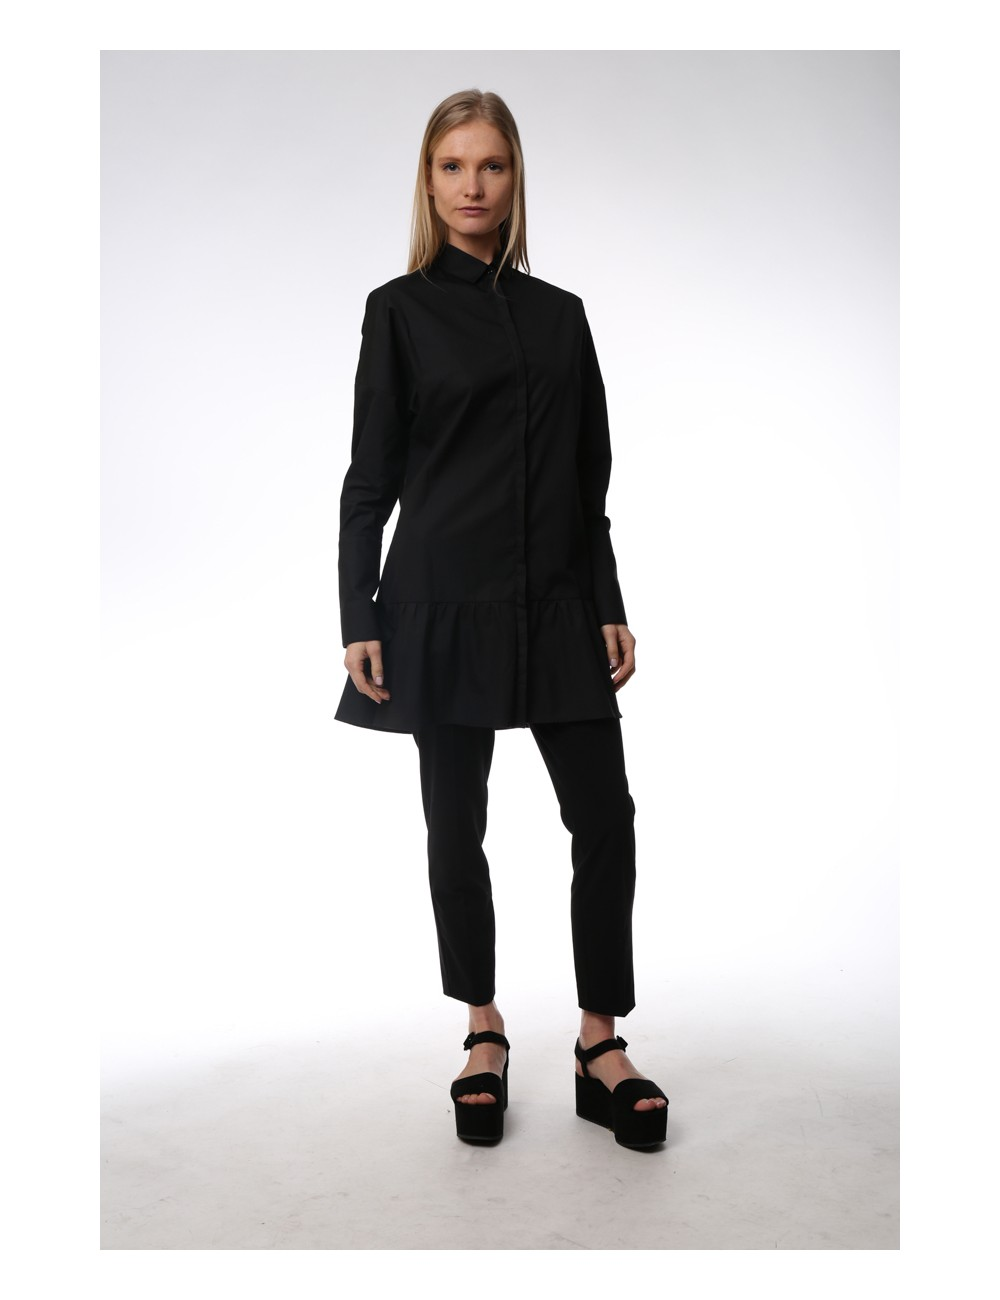 Black maxi shirt with ruches on the low. Cotton Popeline.